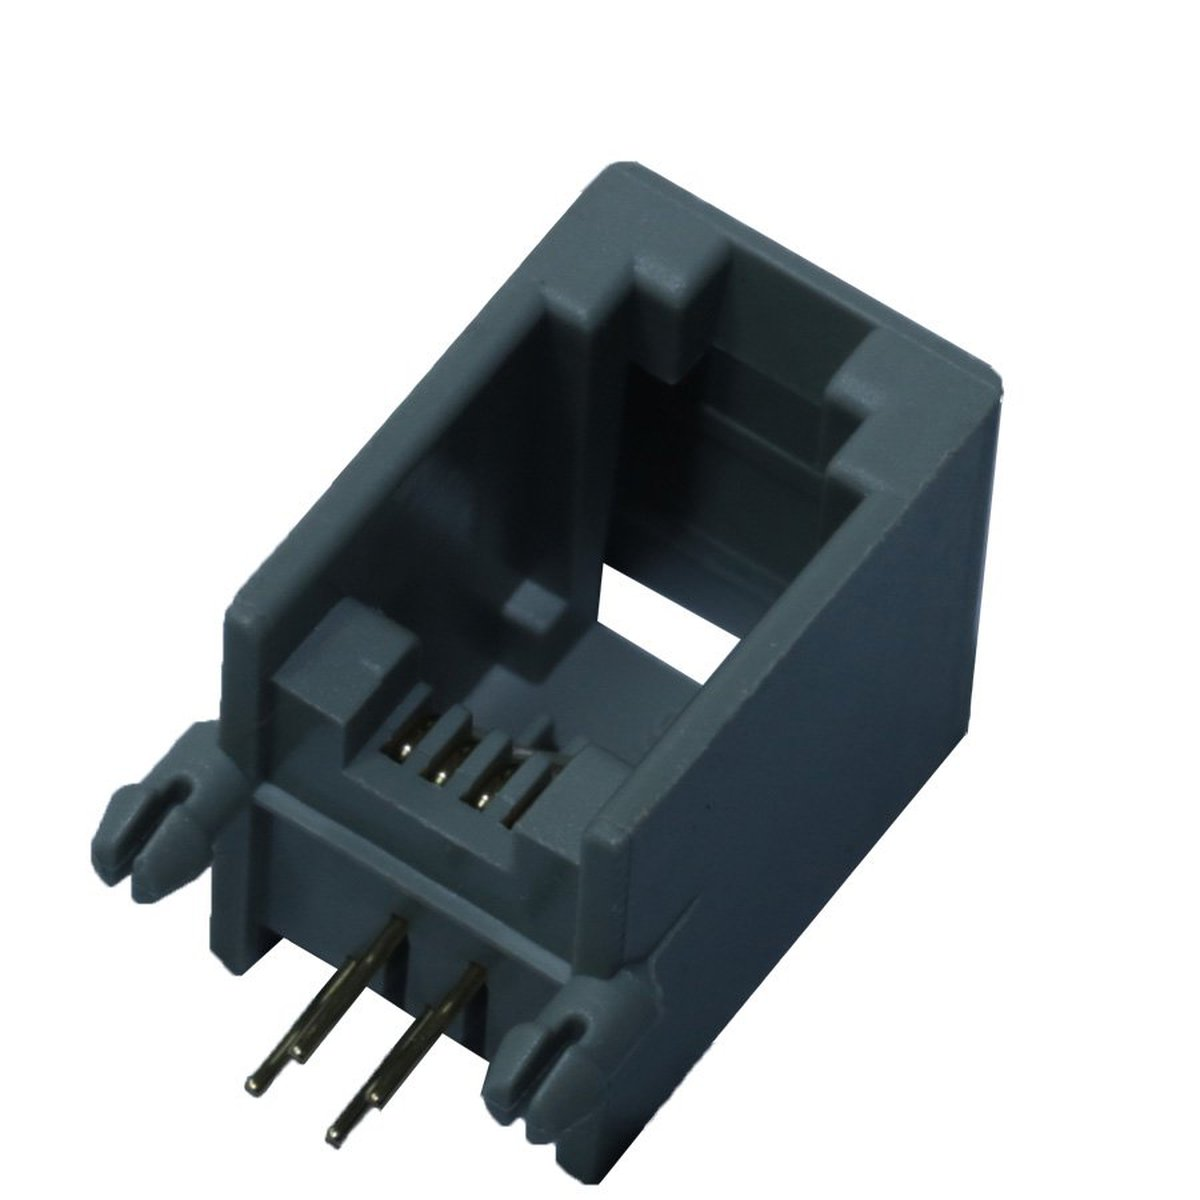 PULSE ELECTRONICS Jack 8P8C THT RJ45 Connector JD2-0010NL